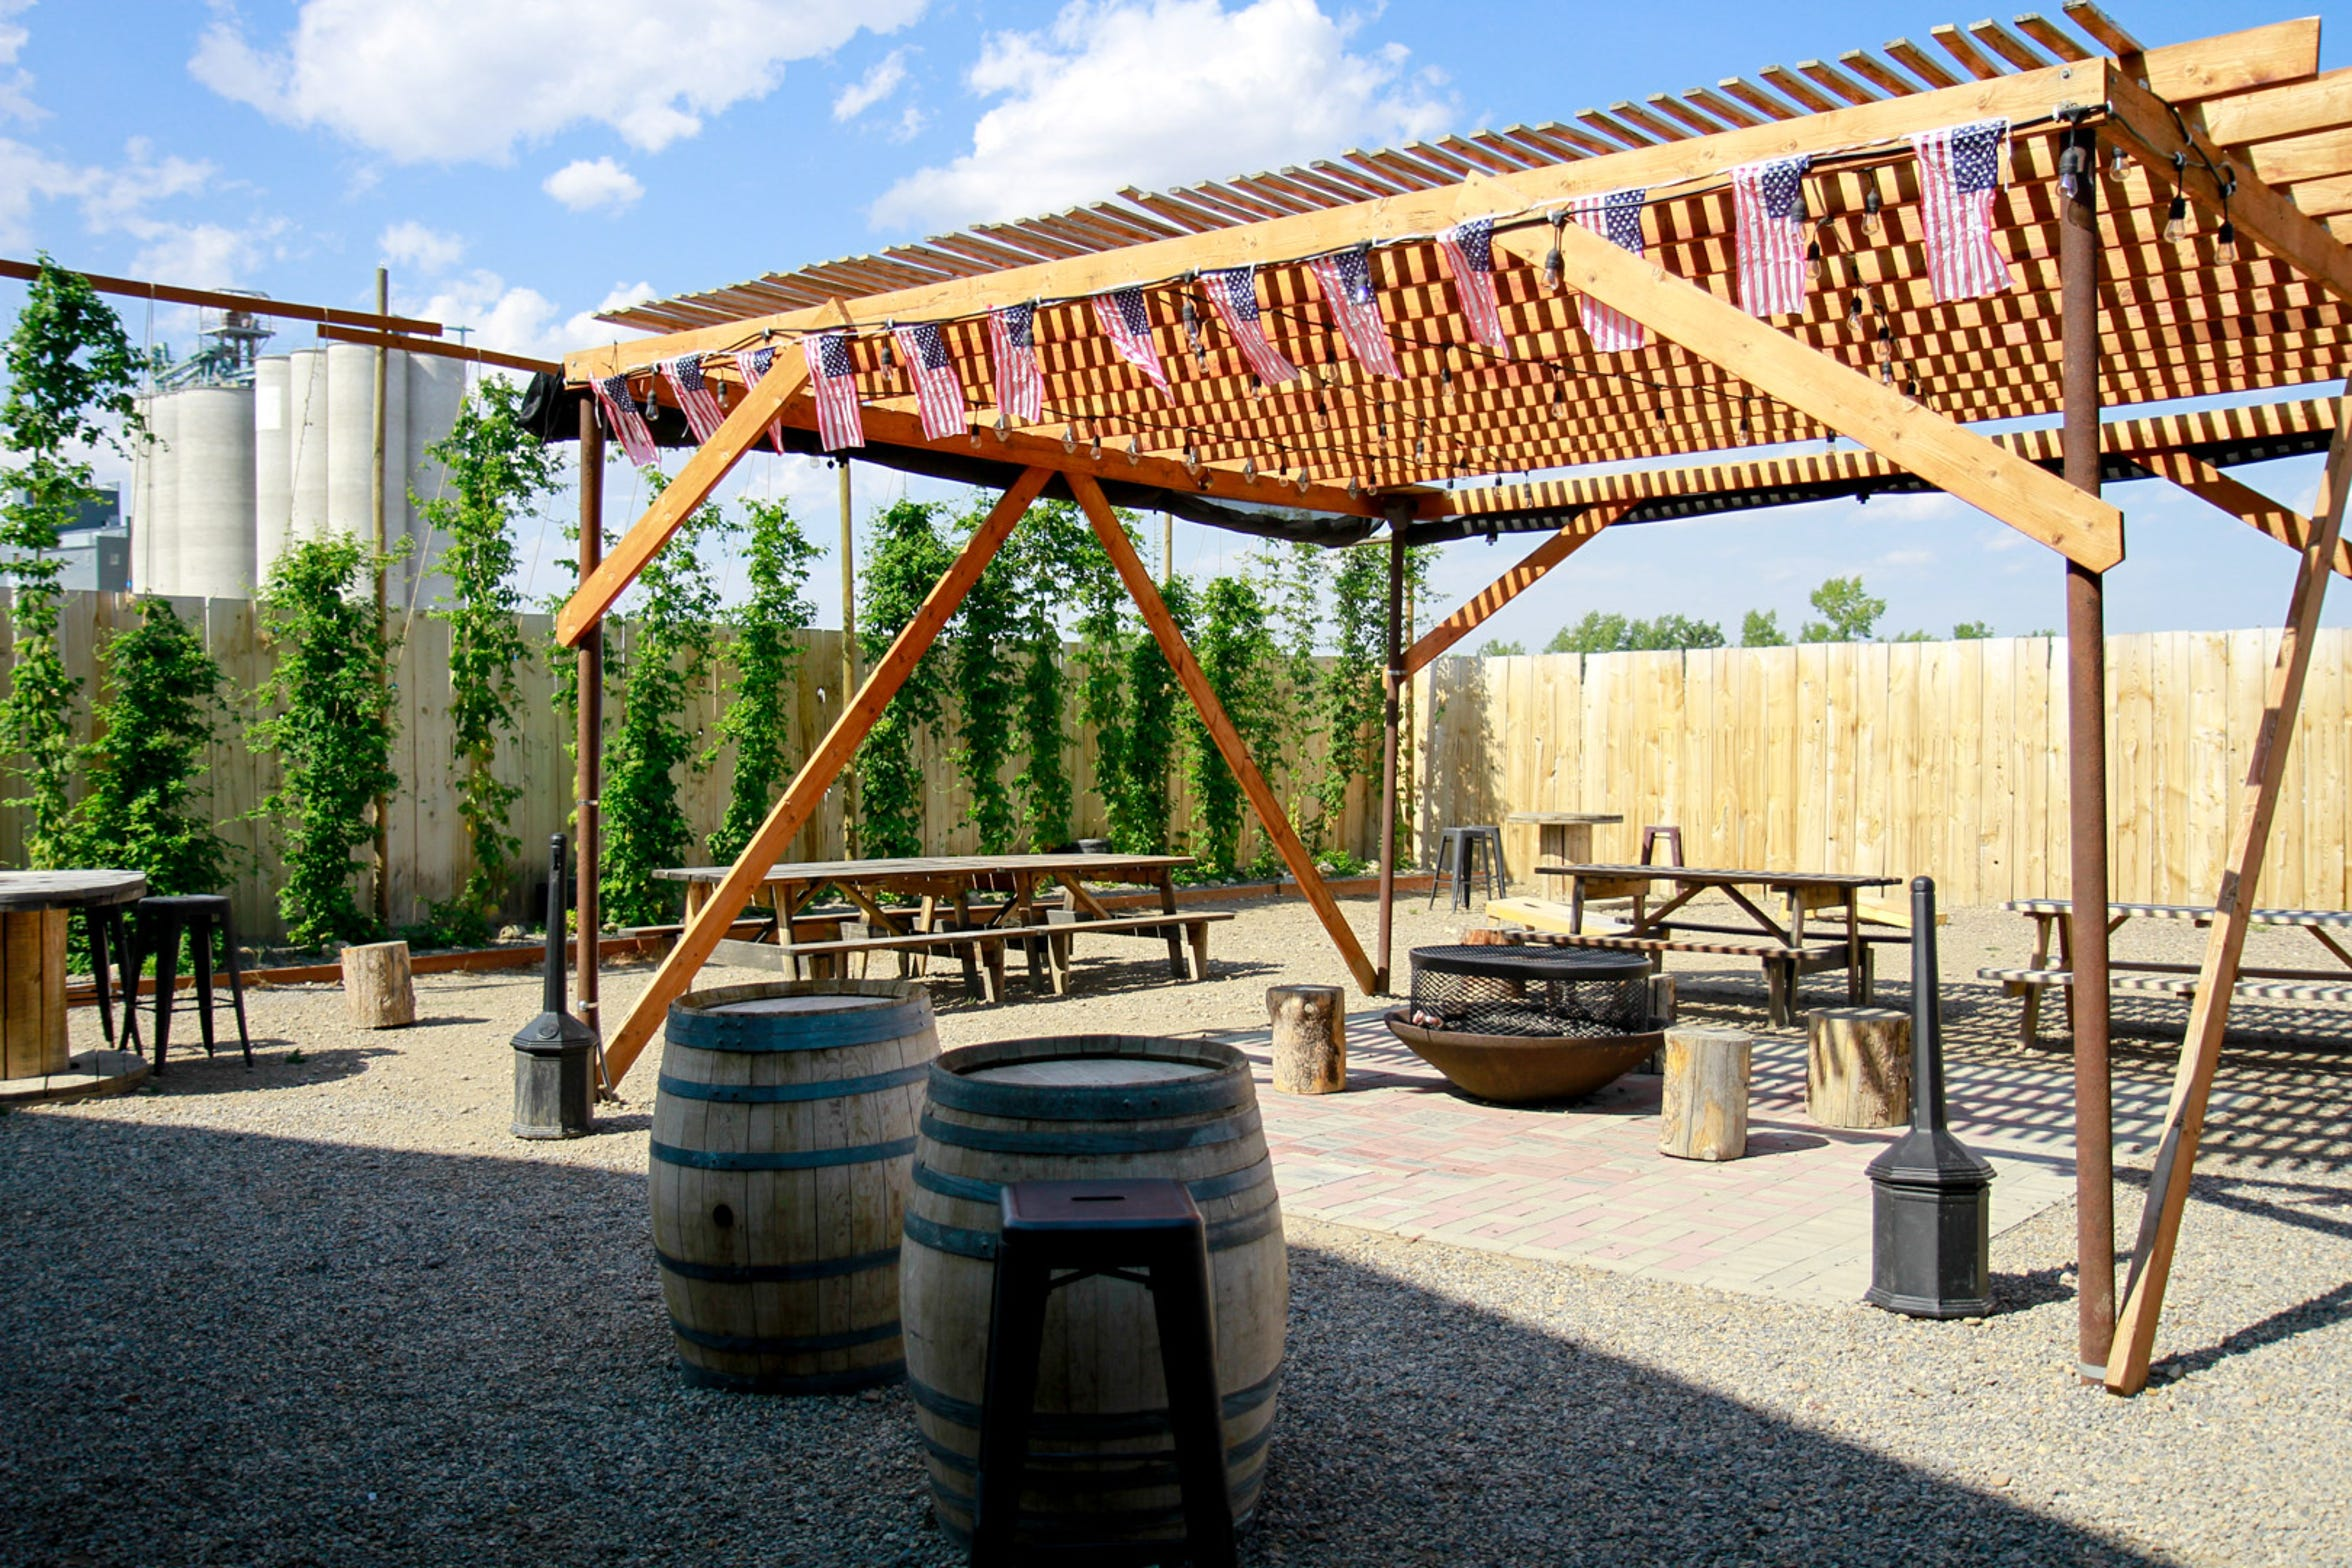 The outside area of the Cut Bank Creek Brewery